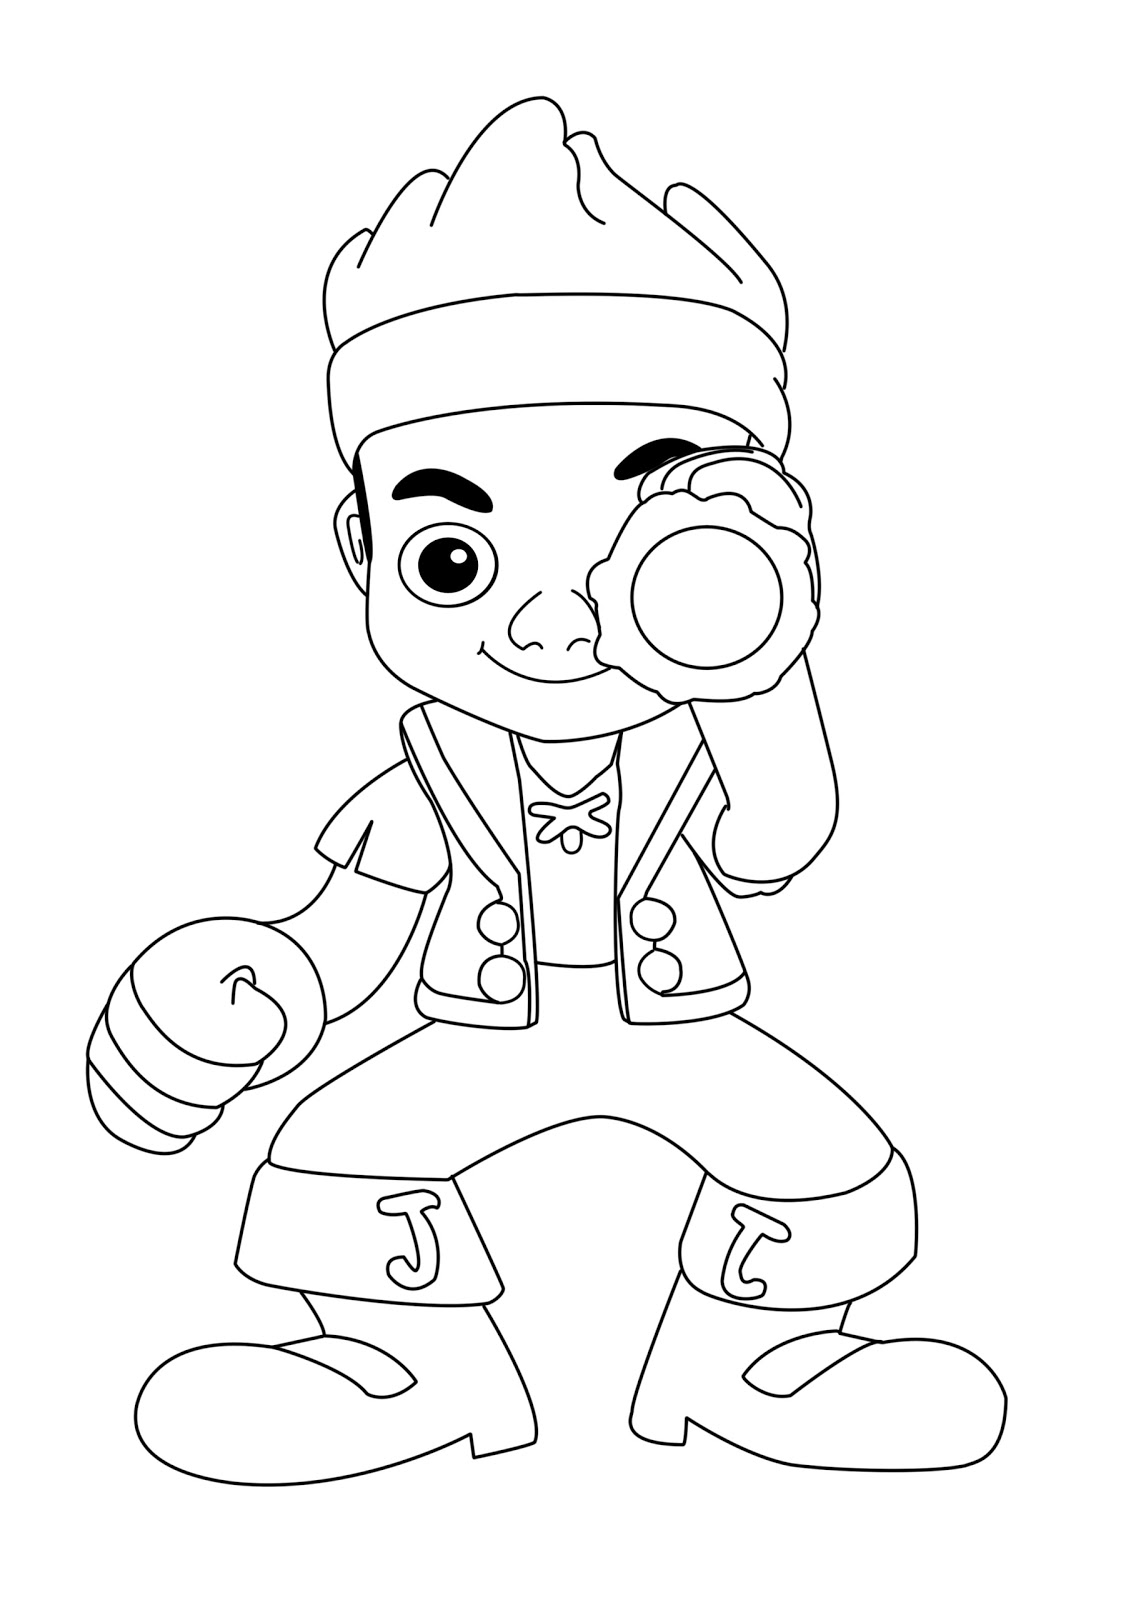 jake neverland pirates coloring pages get this jake and the neverland pirates coloring pages coloring pages jake neverland pirates